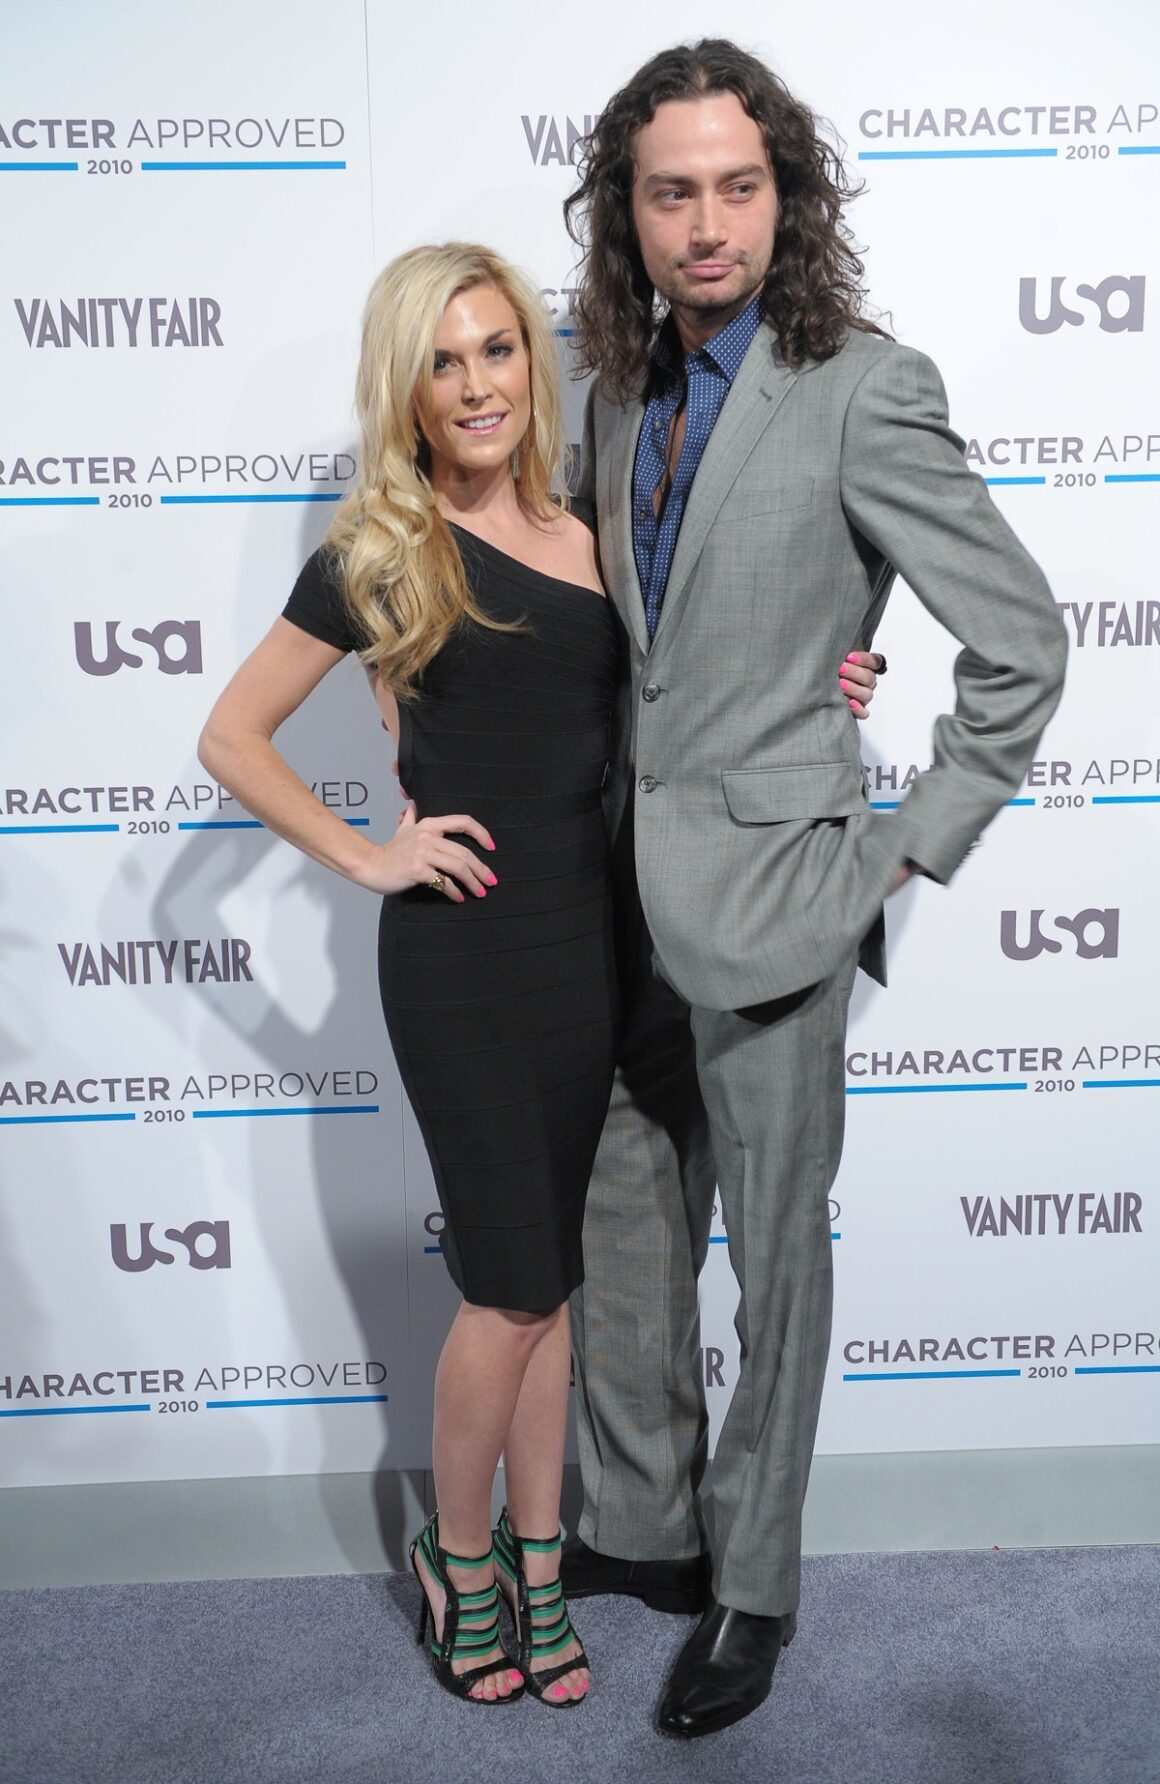 Constantine Maroulis and Tinsley Mortimer 2nd Annual Character Approved Awards Cocktail Reception